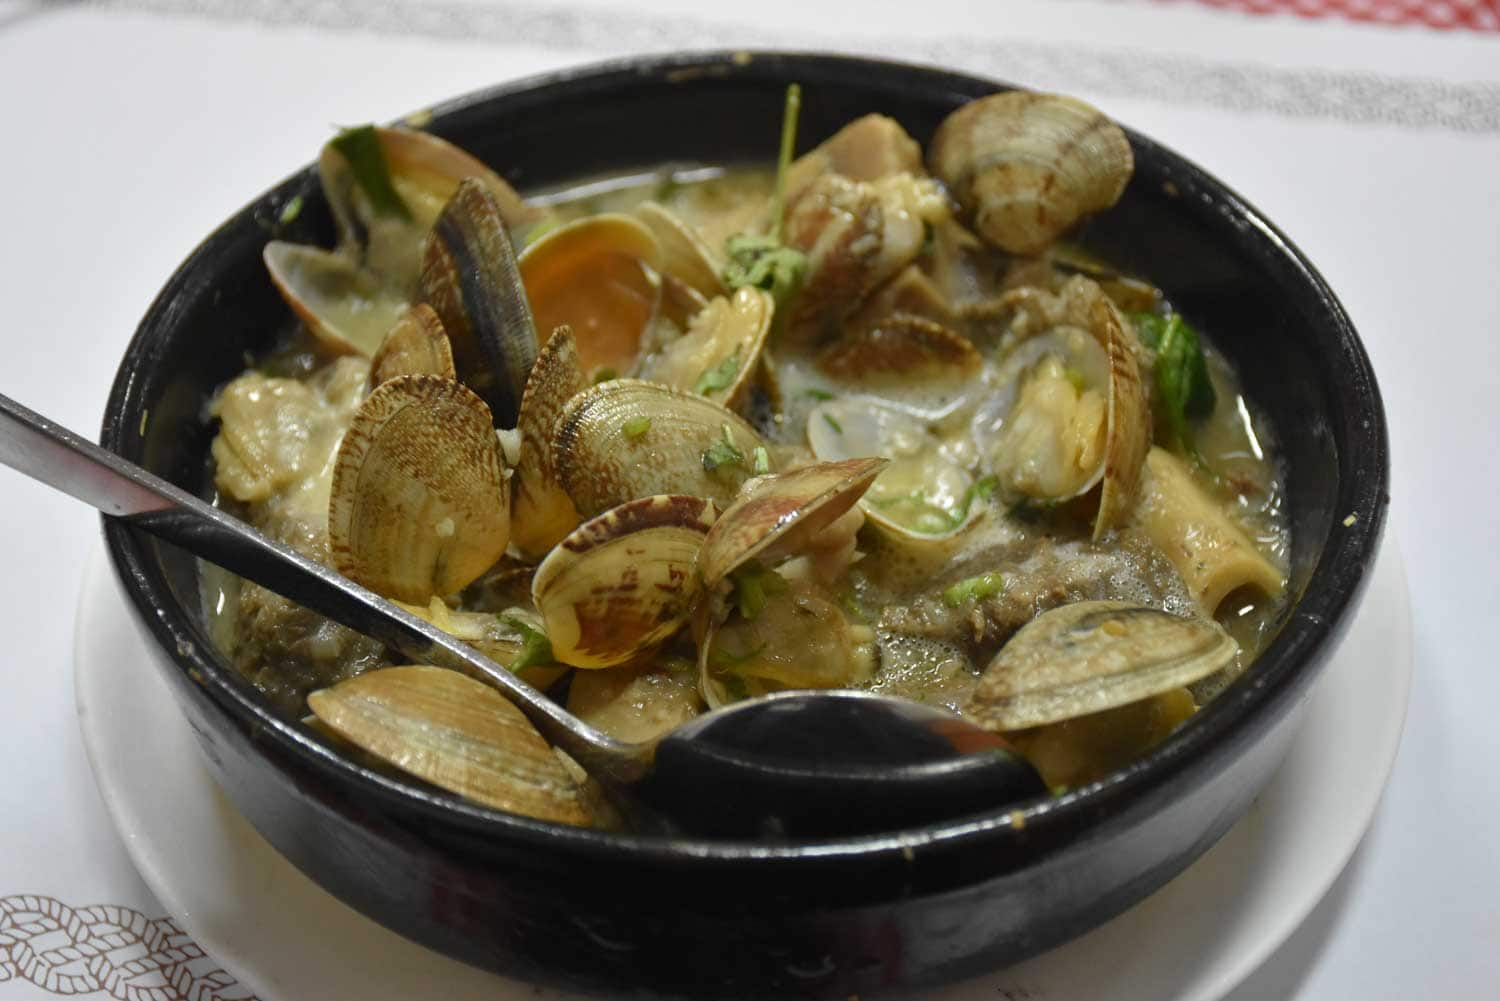 O Santos Macau Lamb Stew with Clams